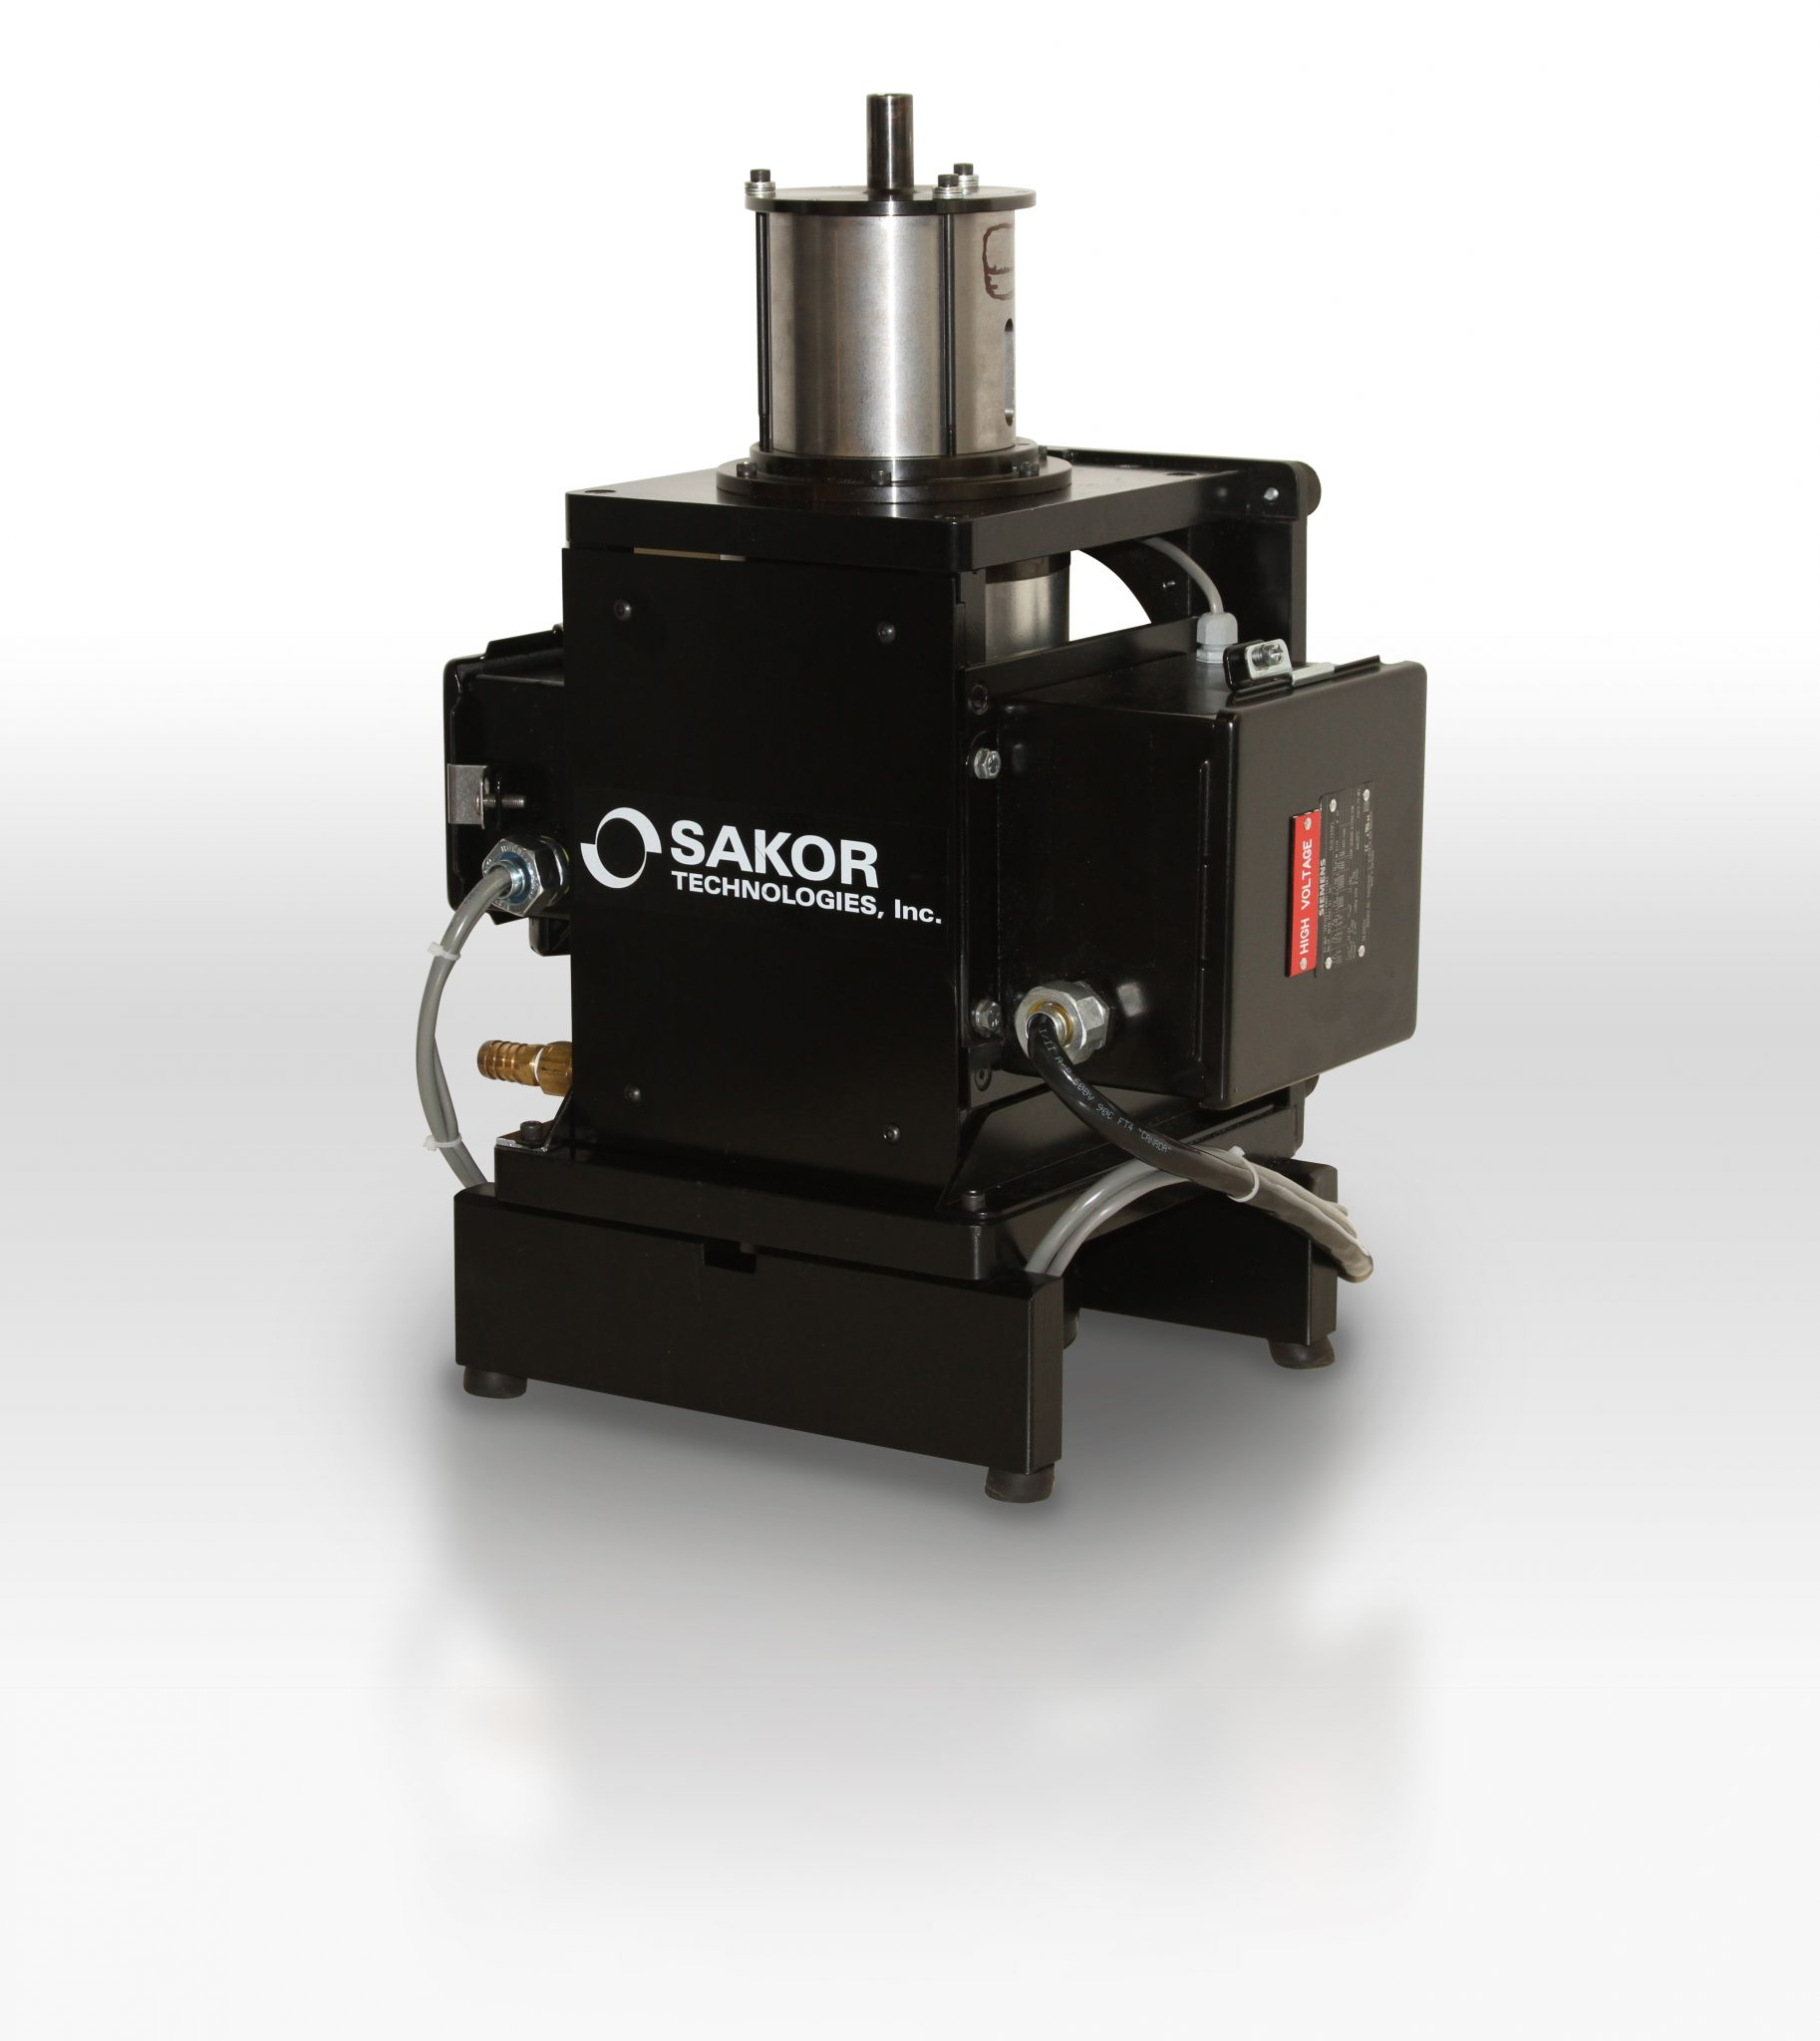 SAKOR Technologies to Exhibit Engine, Hybrid and Electric